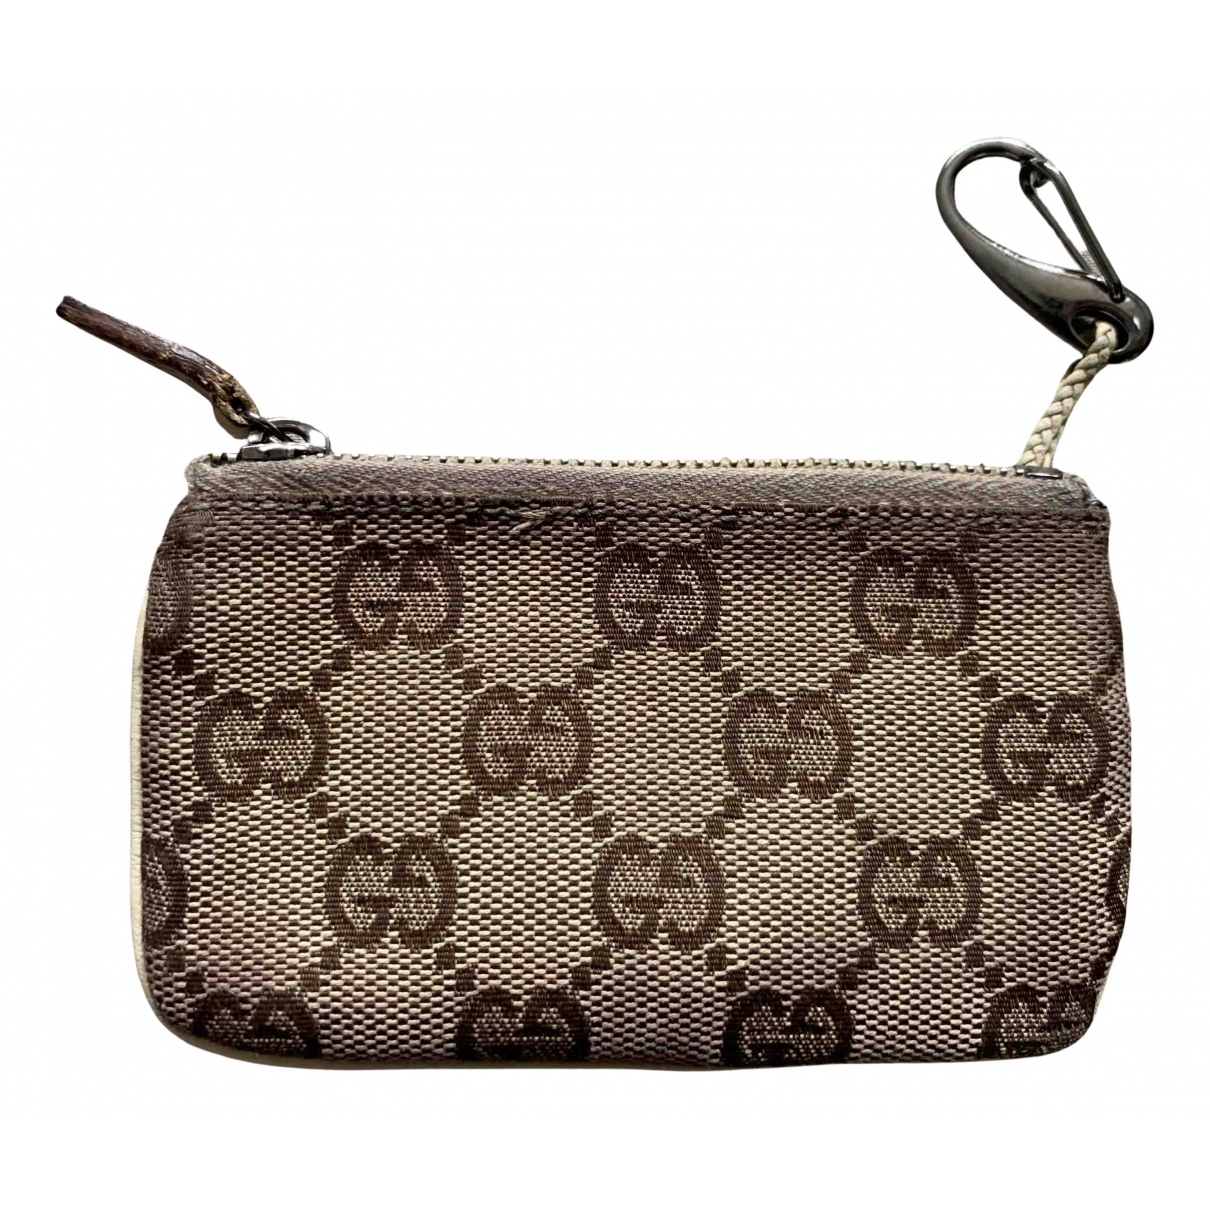 Gucci N Beige Cloth Purses, wallet & cases for Women N